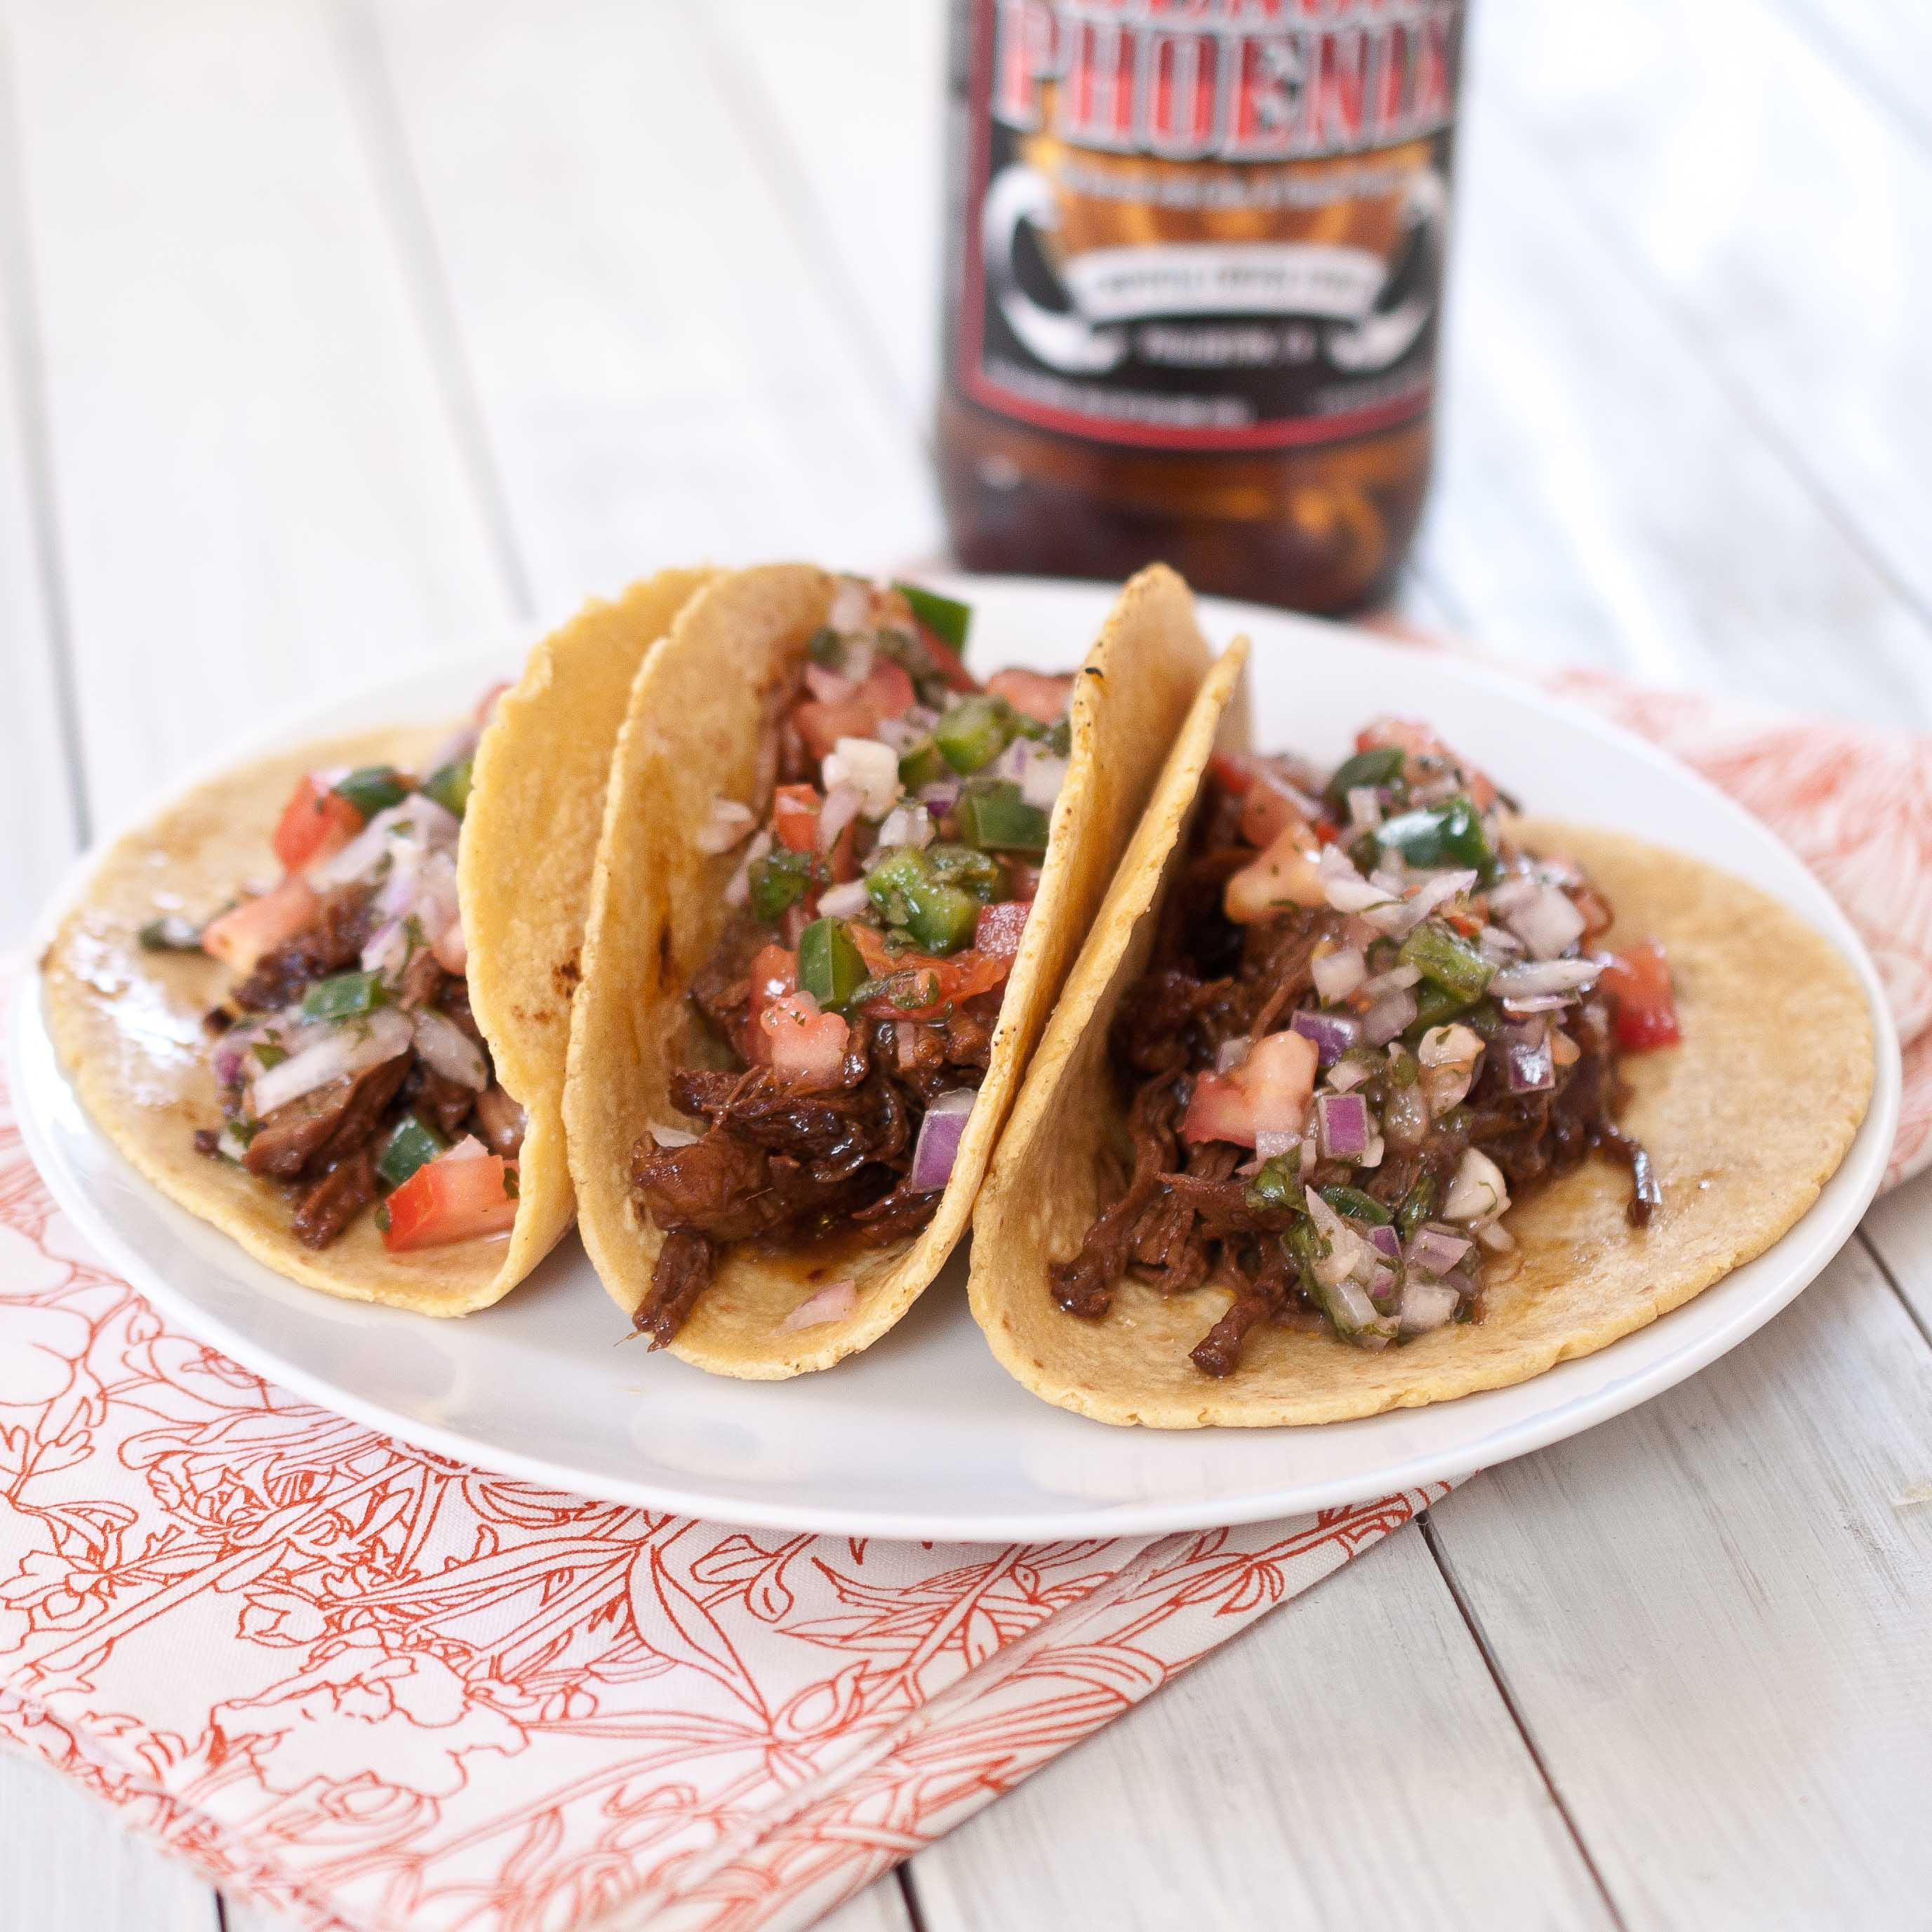 Chipotle Stout Braised Beef Tacos with Fresh Pico De Gallo